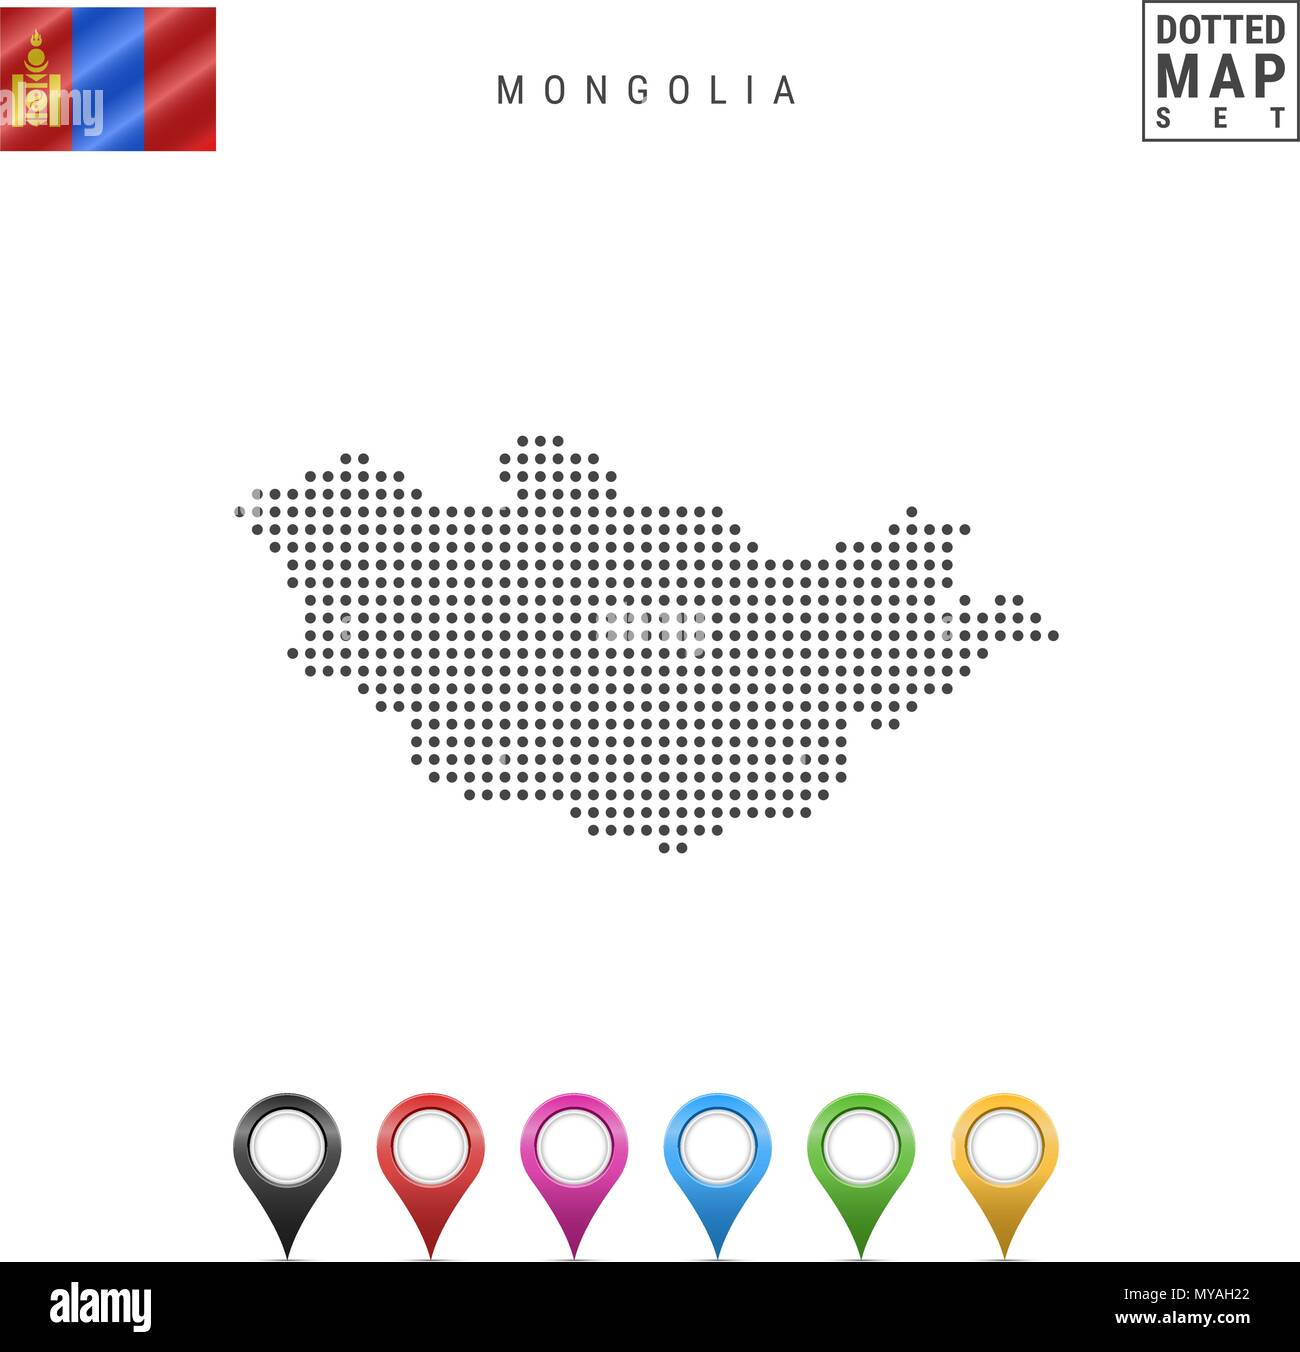 Vector Dotted Map of Mongolia. Simple Silhouette of Mongolia. National Flag of Mongolia. Set of Multicolored Map Markers - Stock Vector